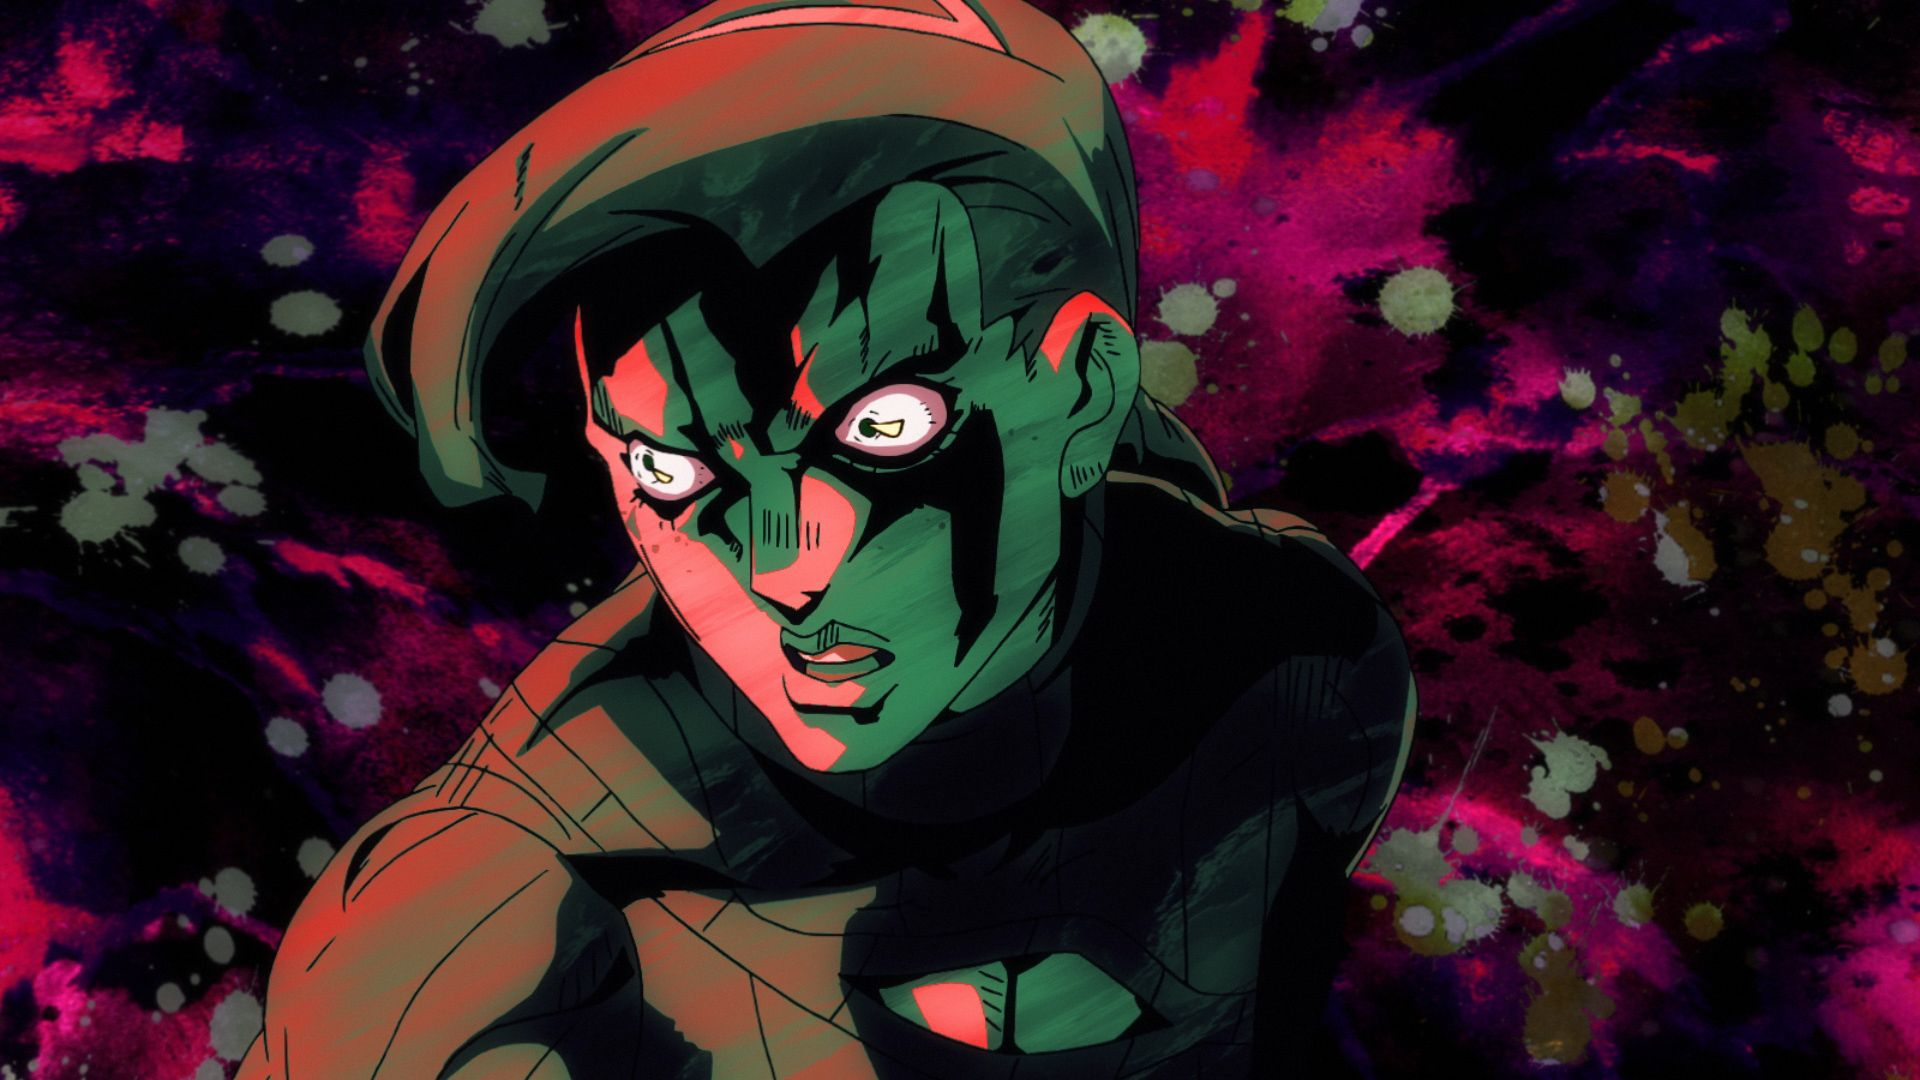 A Little Story From The Past My Name Is Doppio S4 Ep26 Jojo S Bizarre Adventure